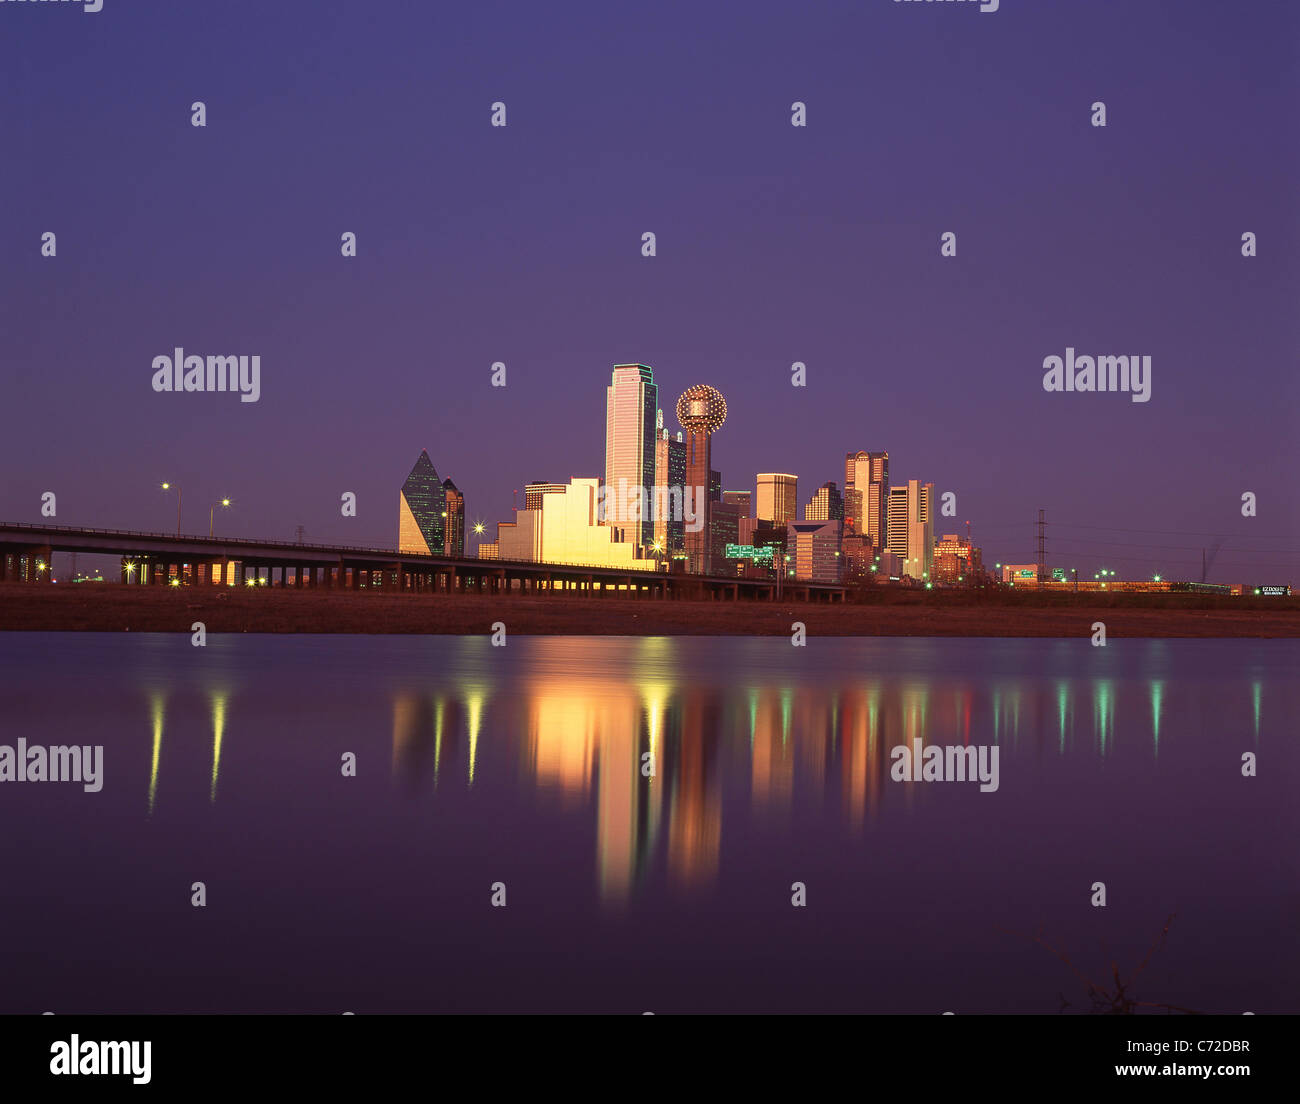 City at dusk, Dallas, Texas, United States of America - Stock Image